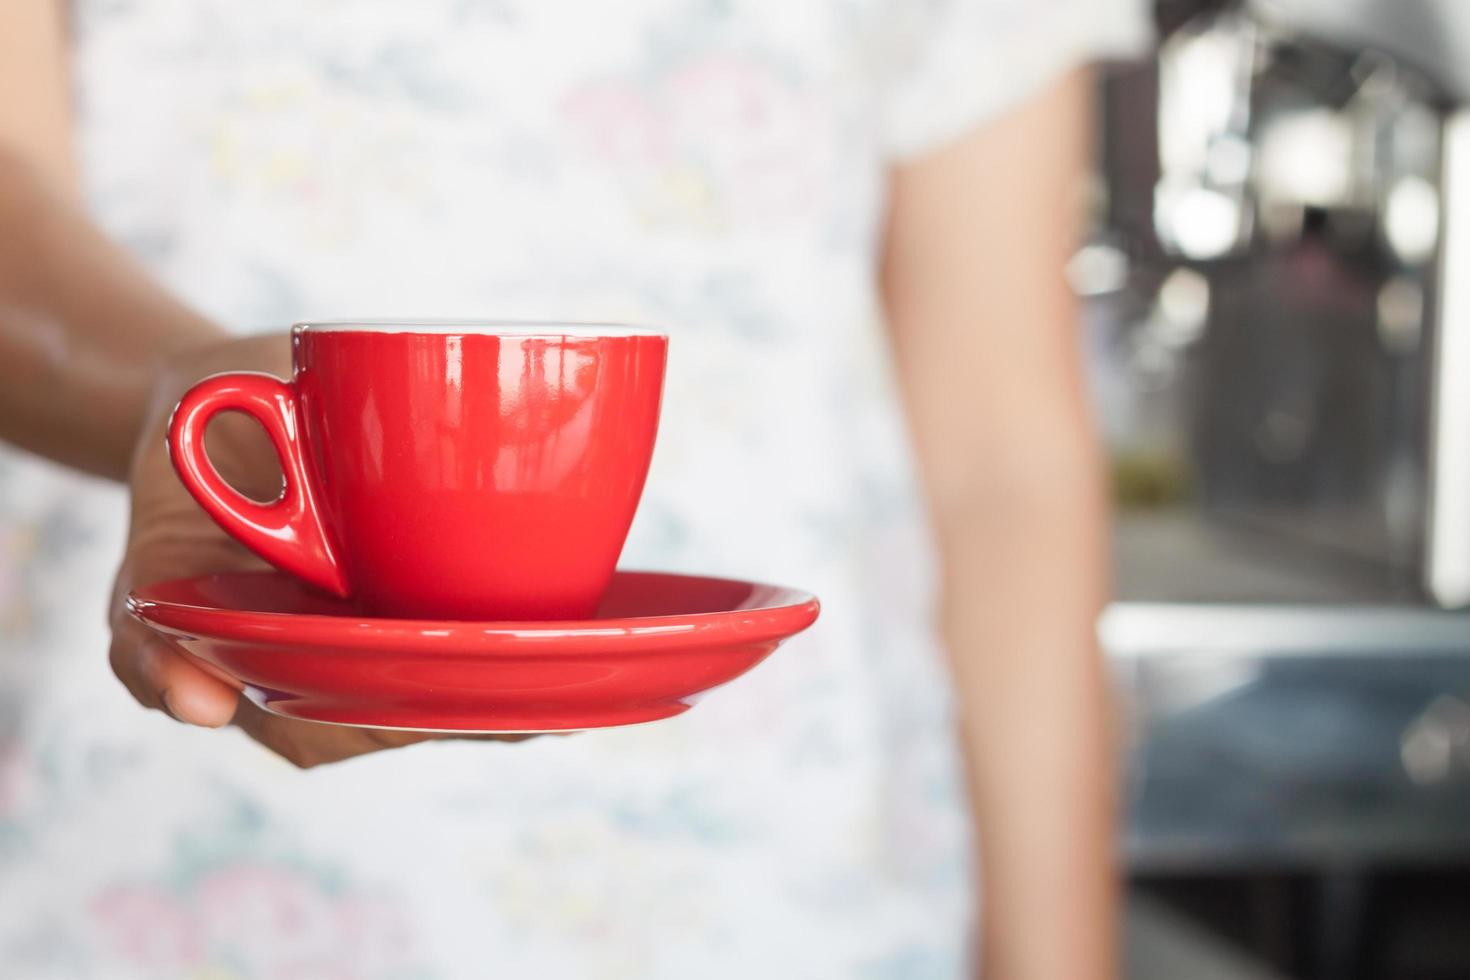 Barista holding a red coffee cup photo